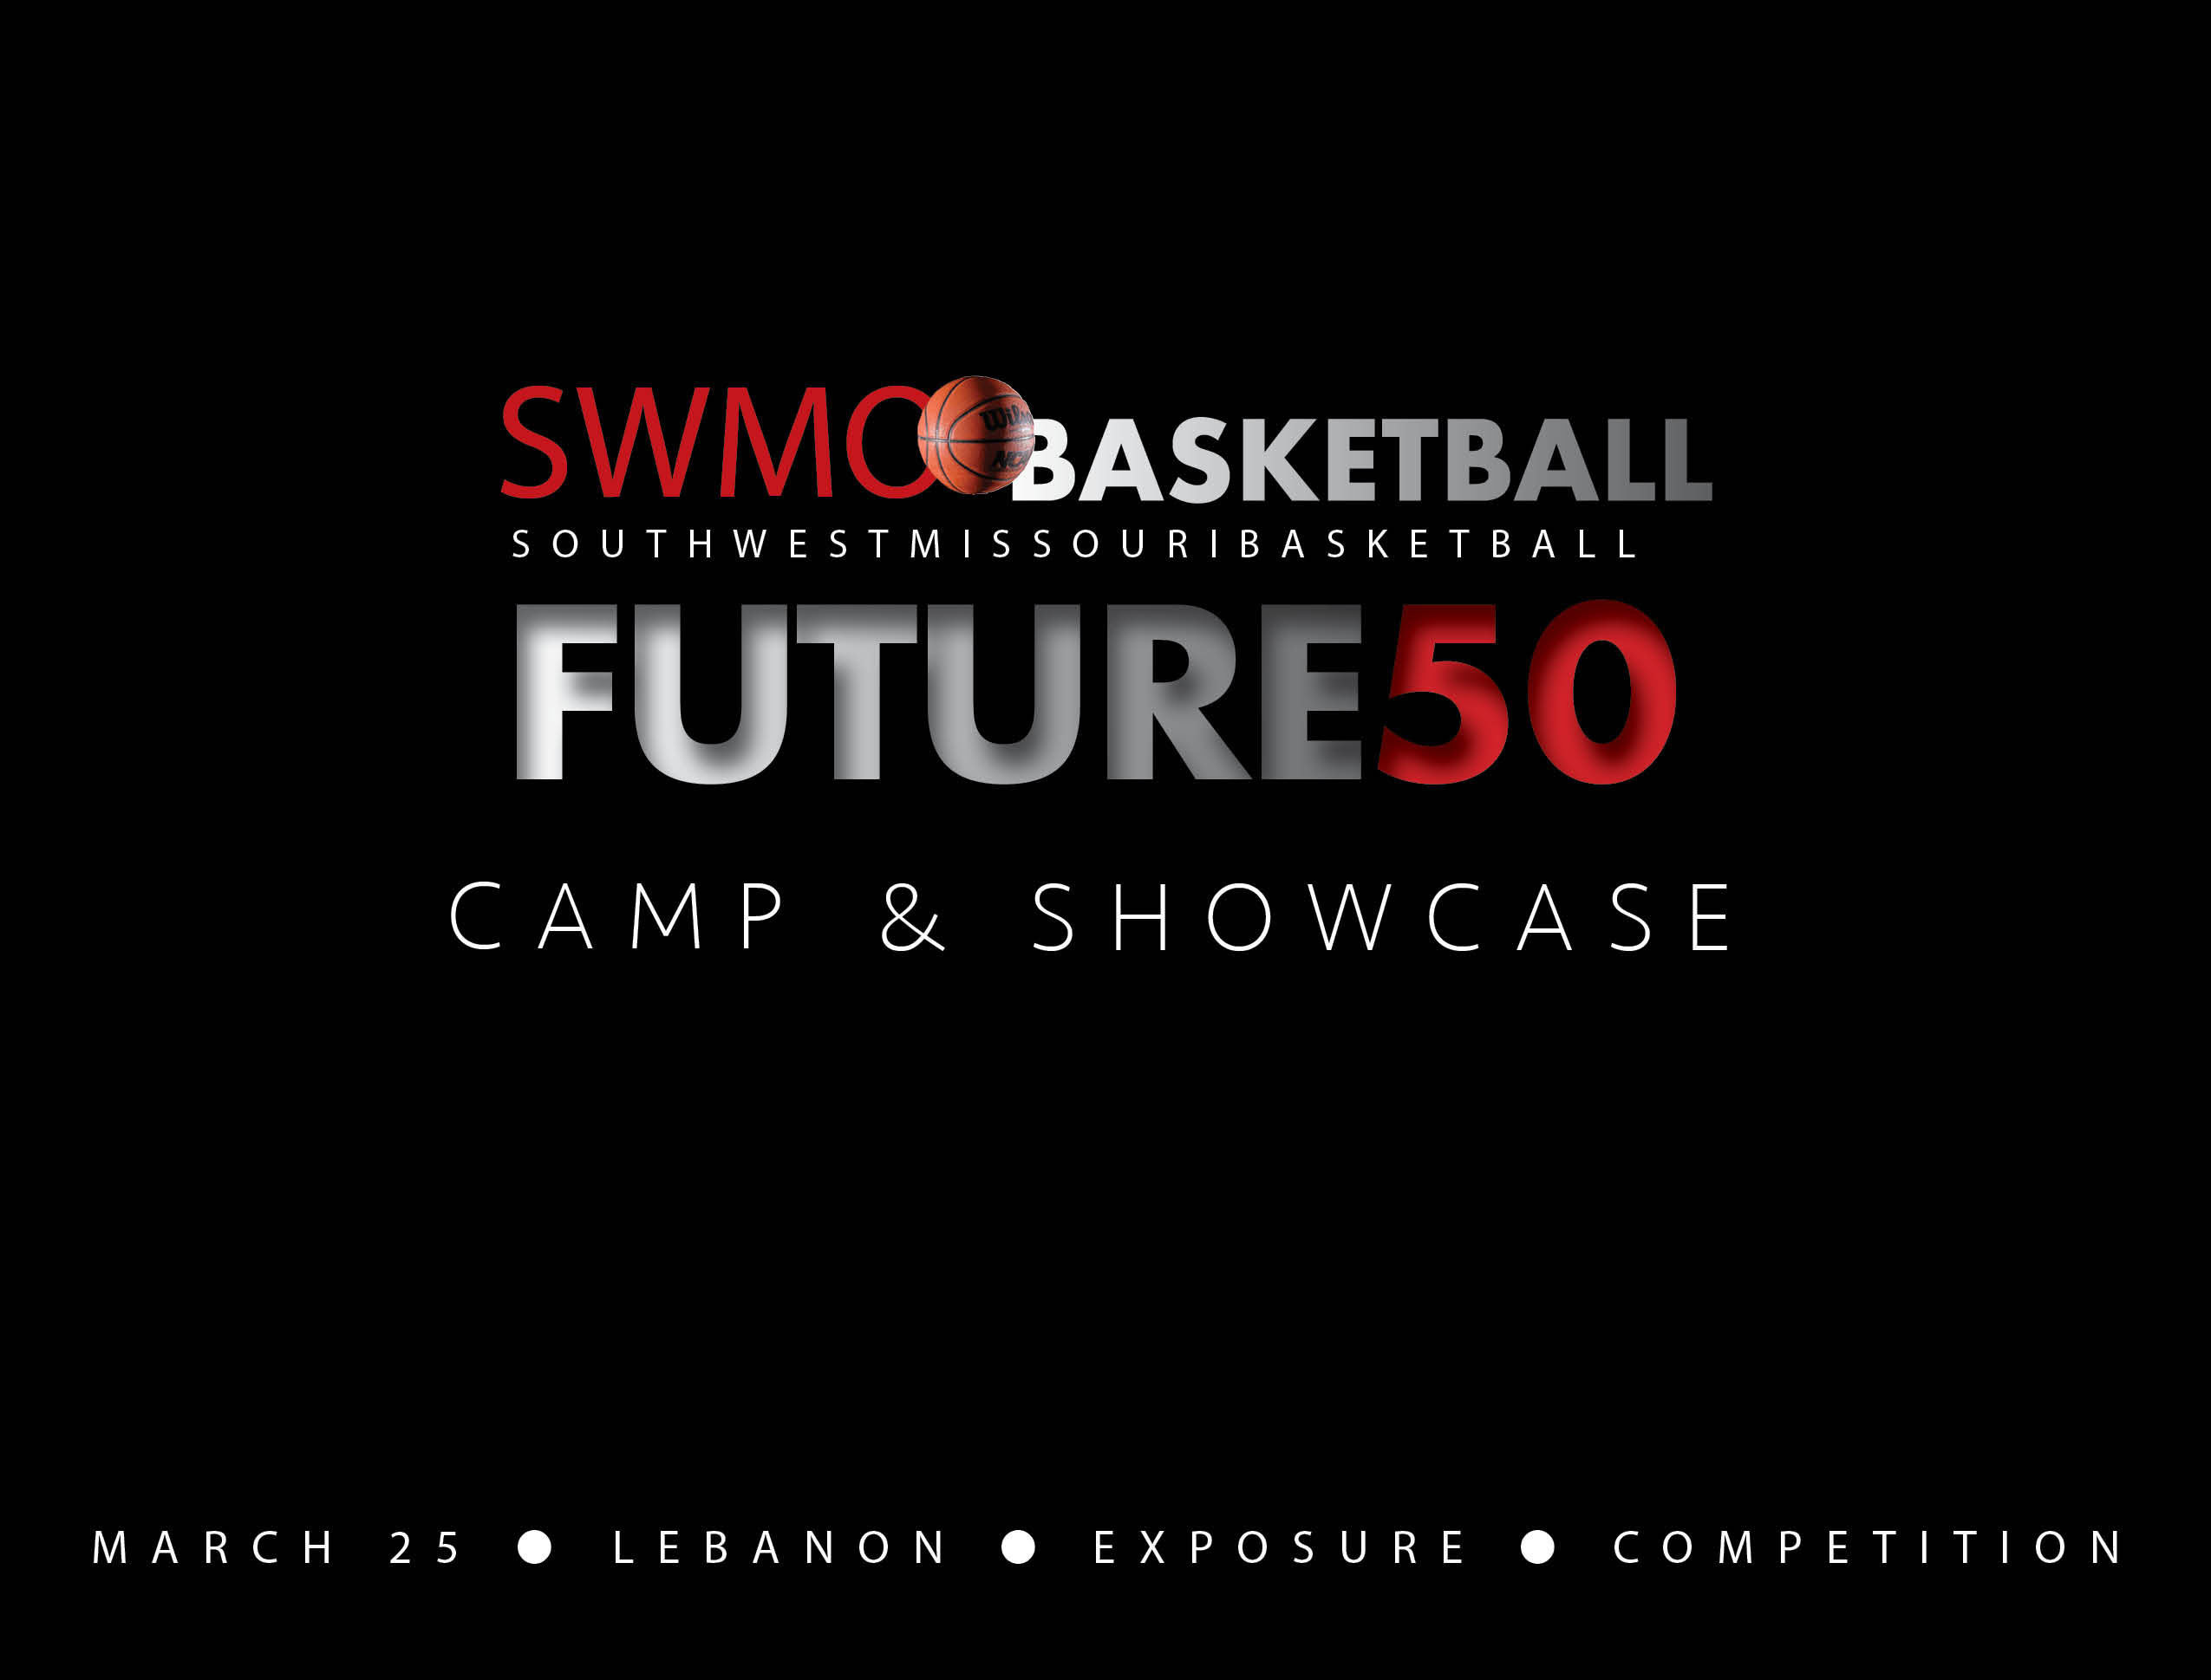 Future50 Camp & Showcase Personal Scouting Report 00001